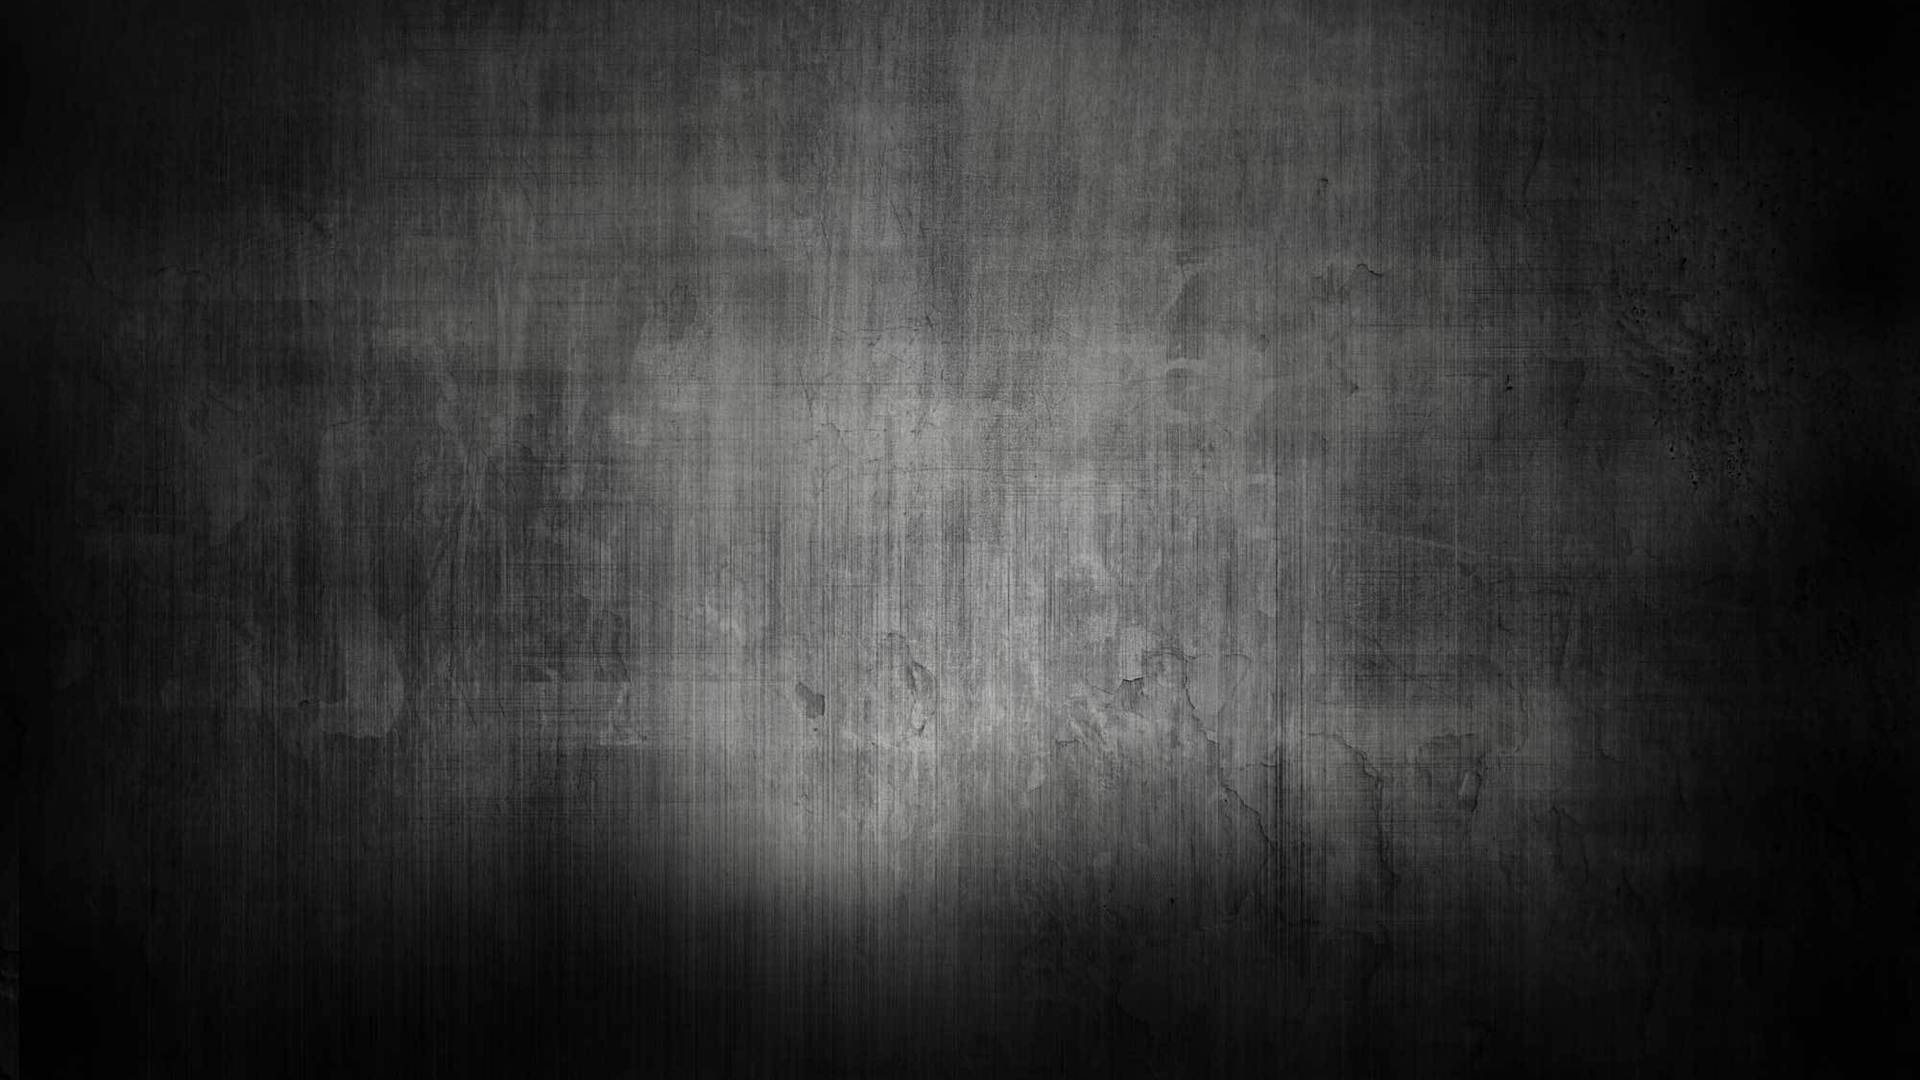 dark_spot_background_texture_50611_1920x1080